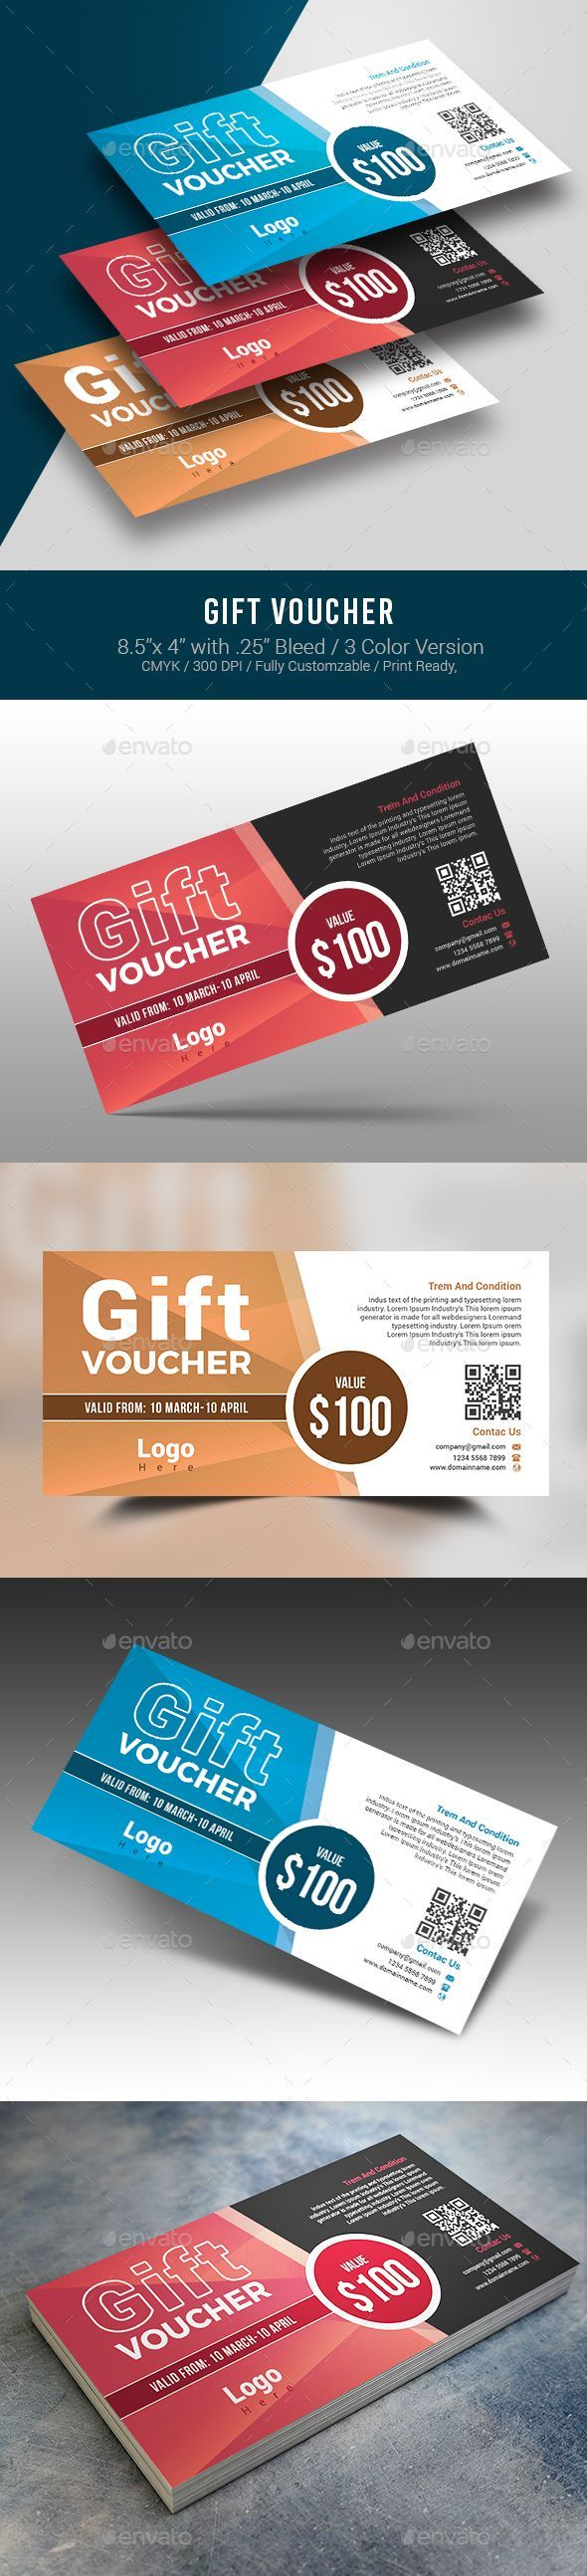 business letter format with enclosure%0A Gift Voucher Gift Voucher or discount coupon for your business such as  restaurant  salon  fitness etc  Available on PSD format  all you need to do  is just